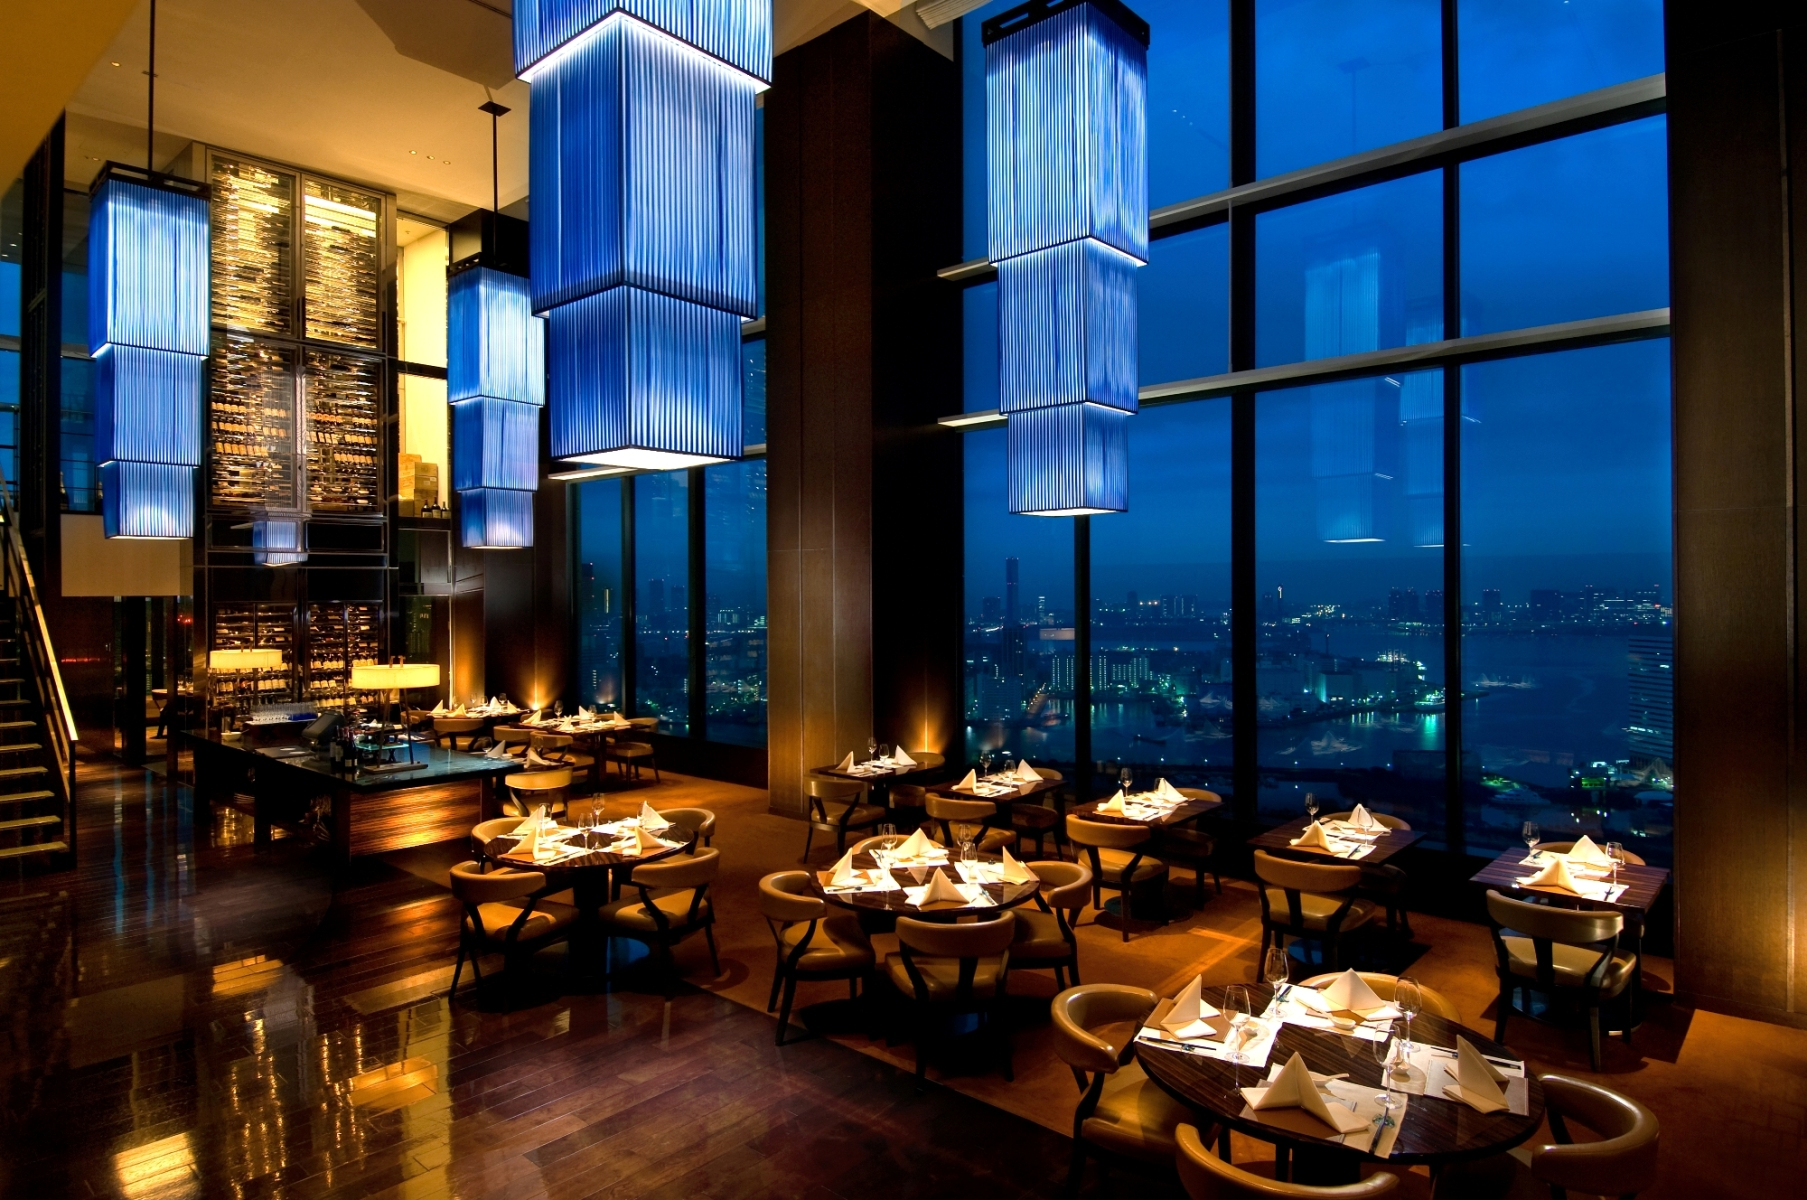 Grand hyatt party plans southern tower winter stays for Luxury places